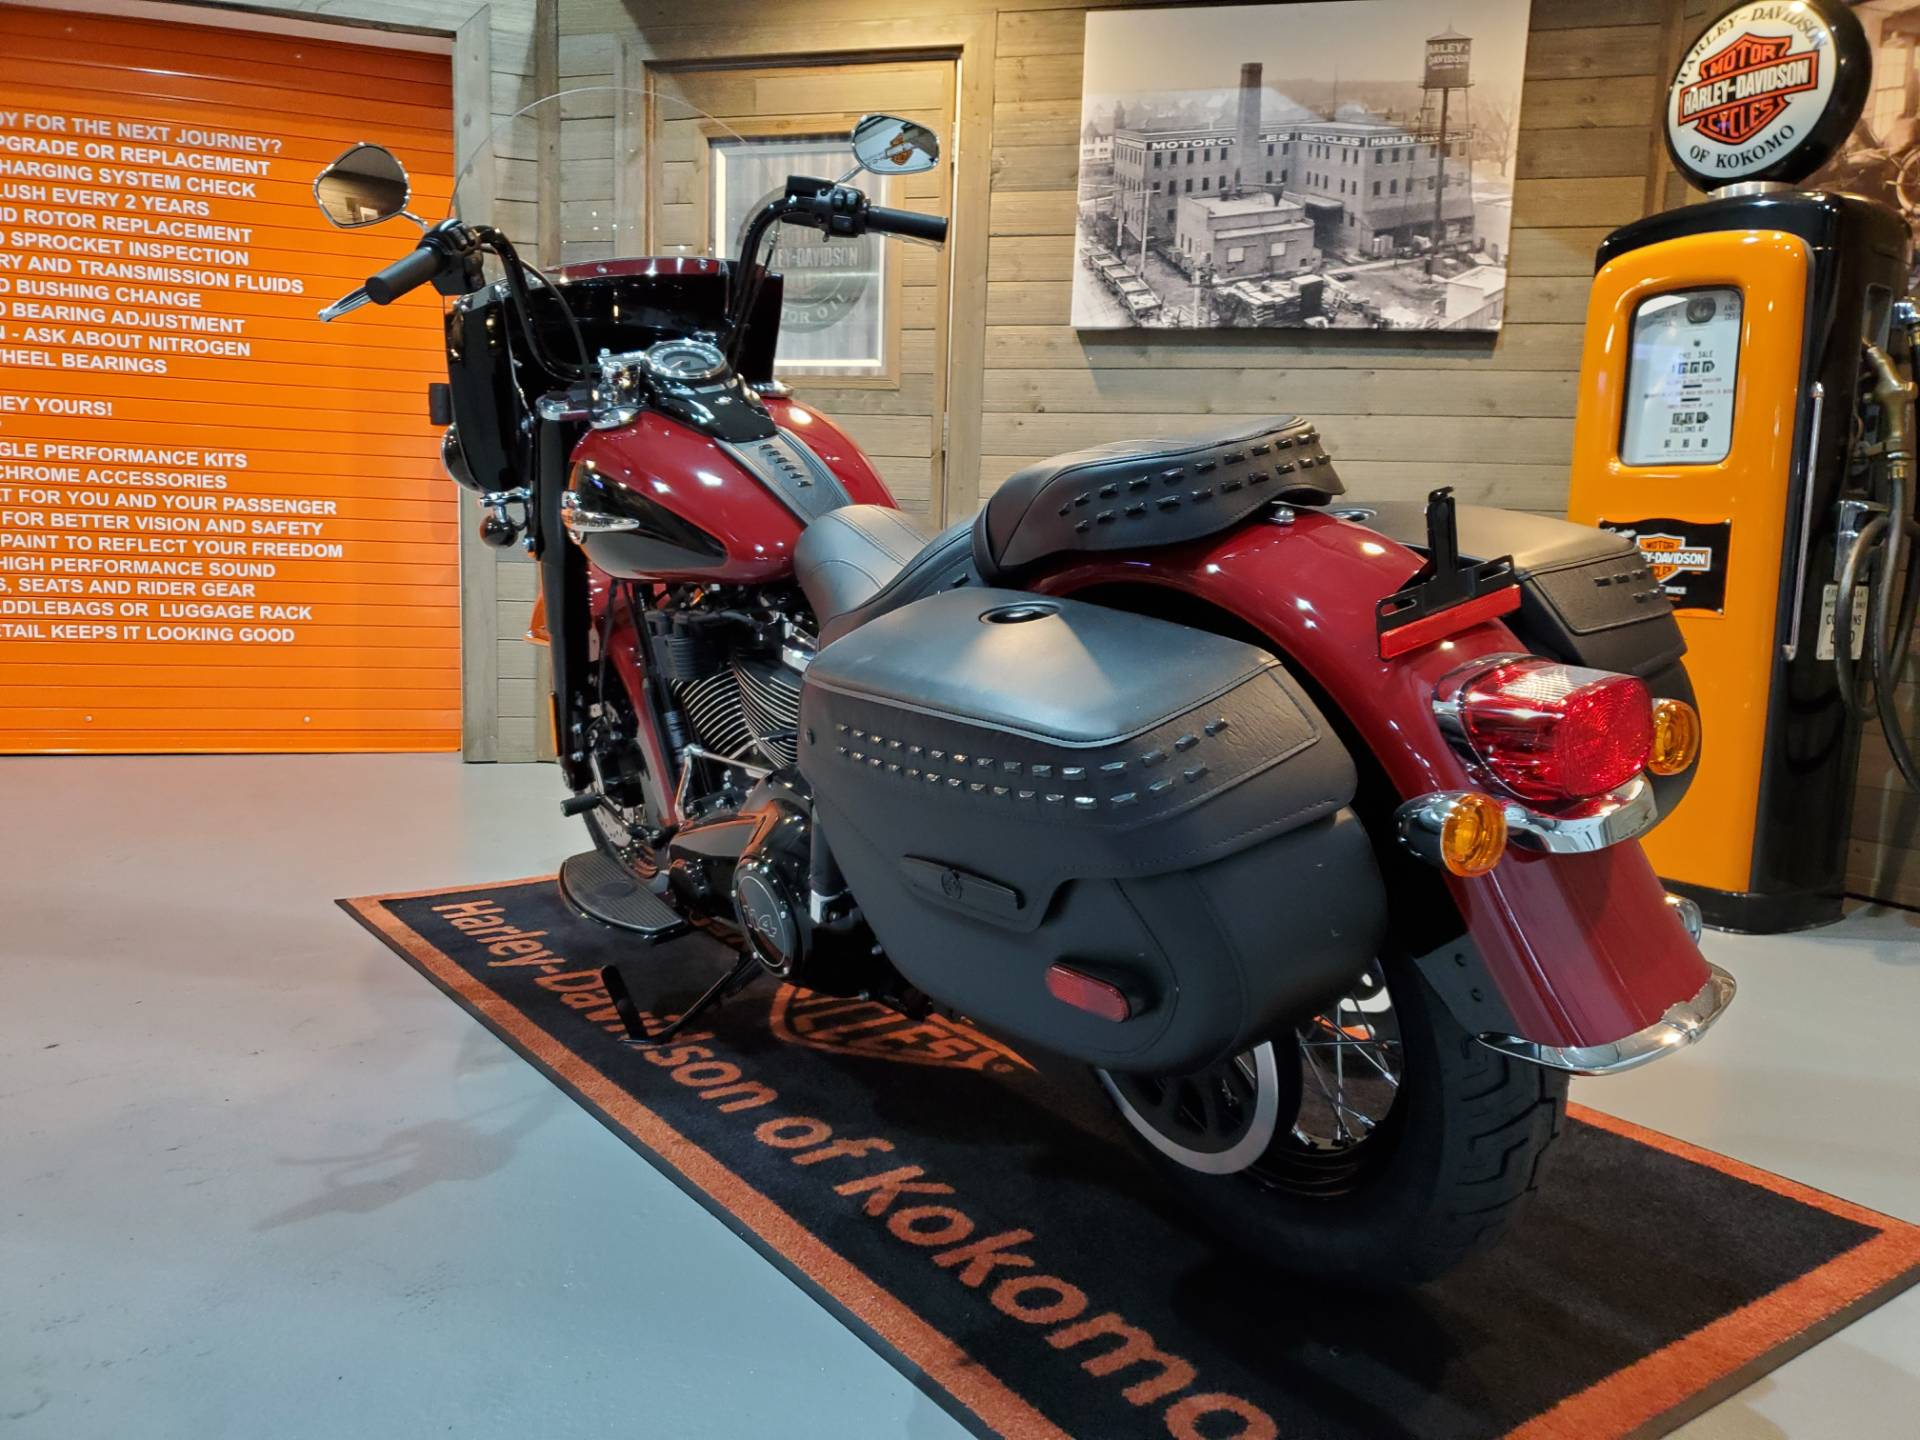 2020 Harley-Davidson Heritage Classic 114 in Kokomo, Indiana - Photo 11